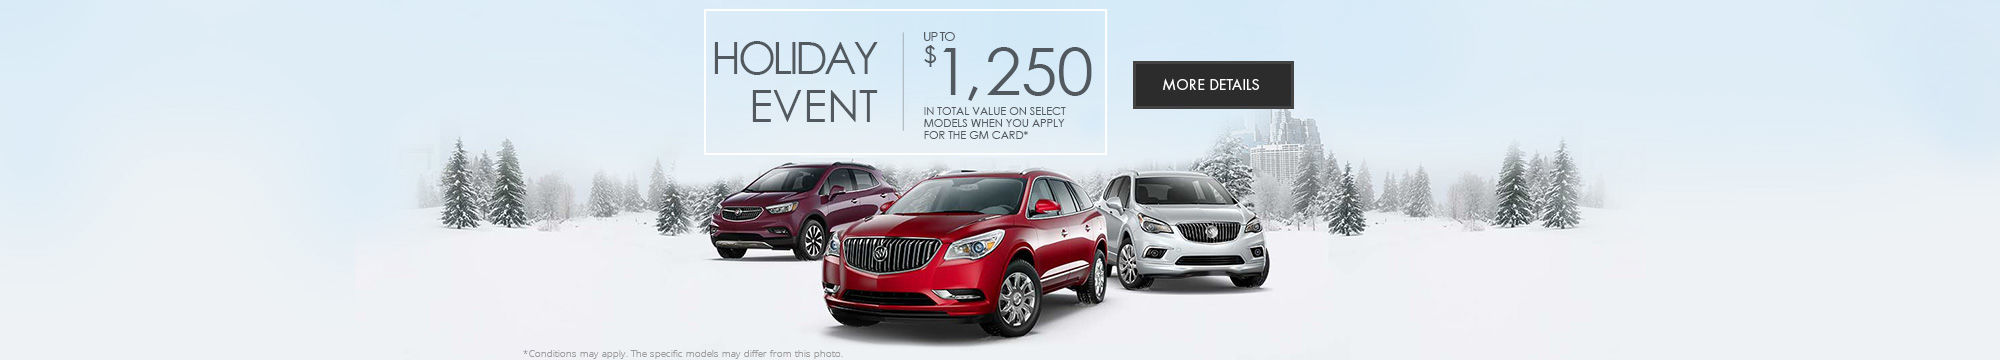 Buick Holiday Event